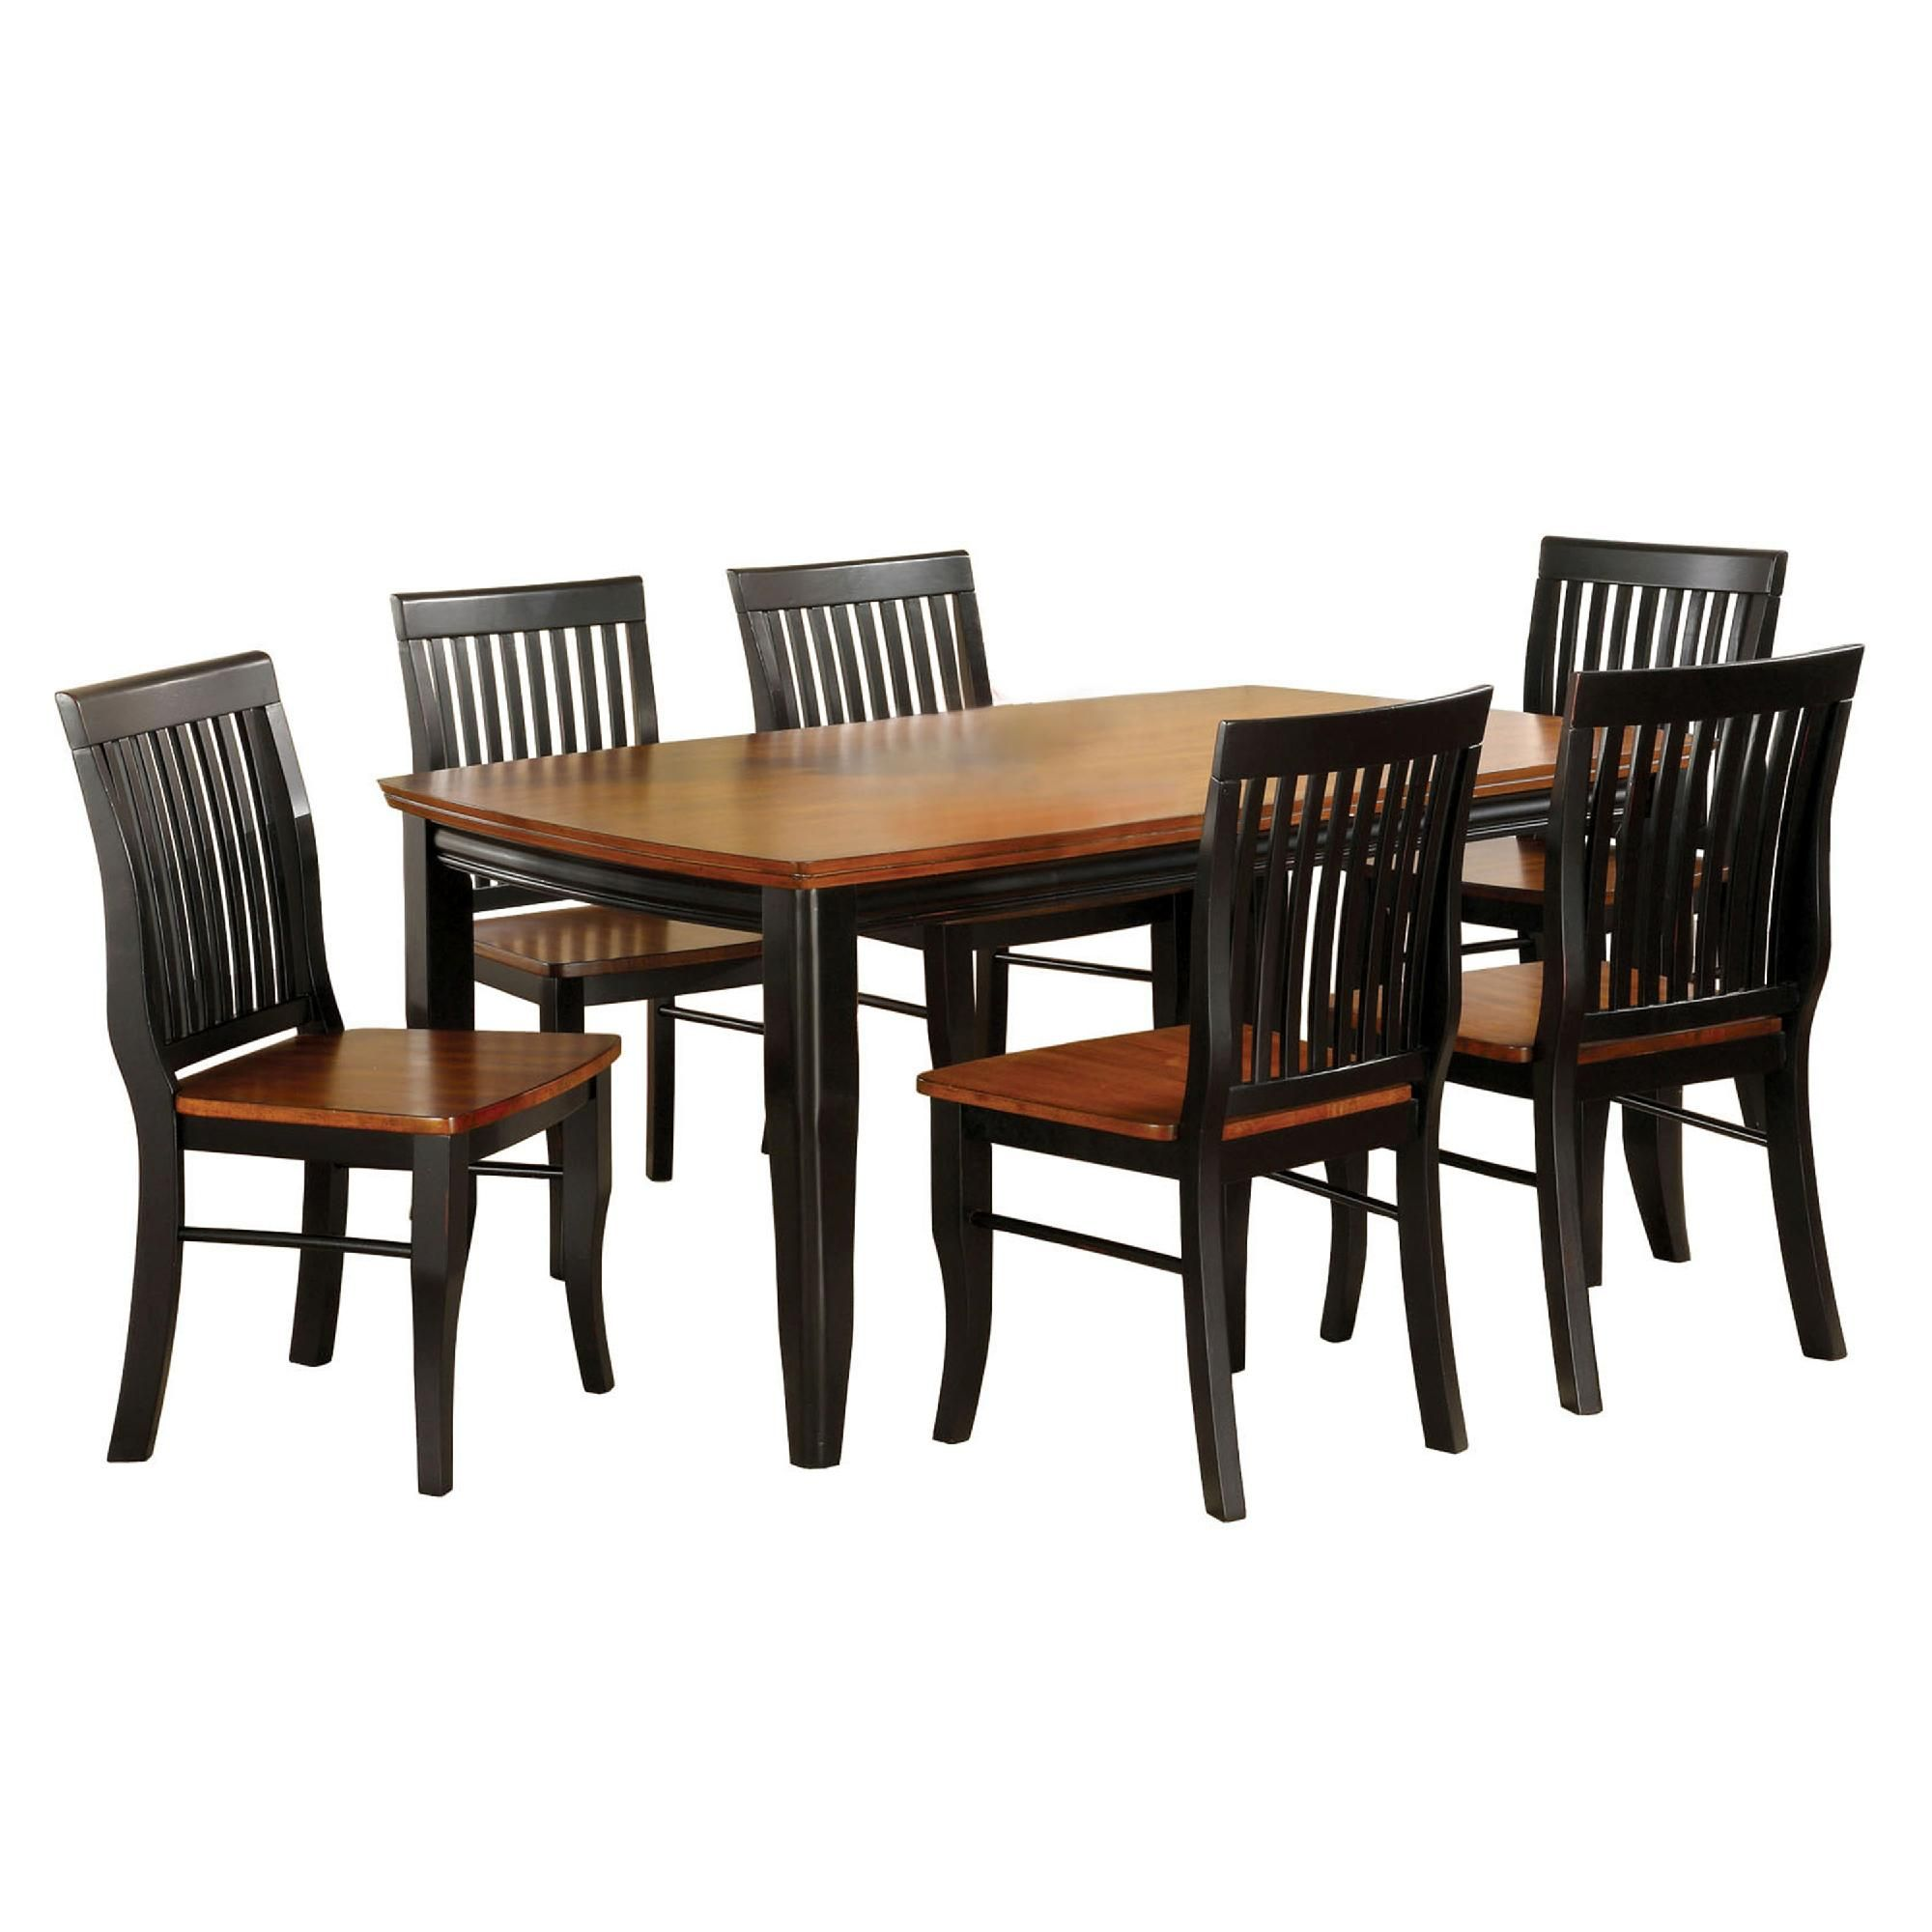 Get Up To 20% Off Venetian Dining Furniture From #kmart When You Awesome Kmart Dining Room Set Inspiration